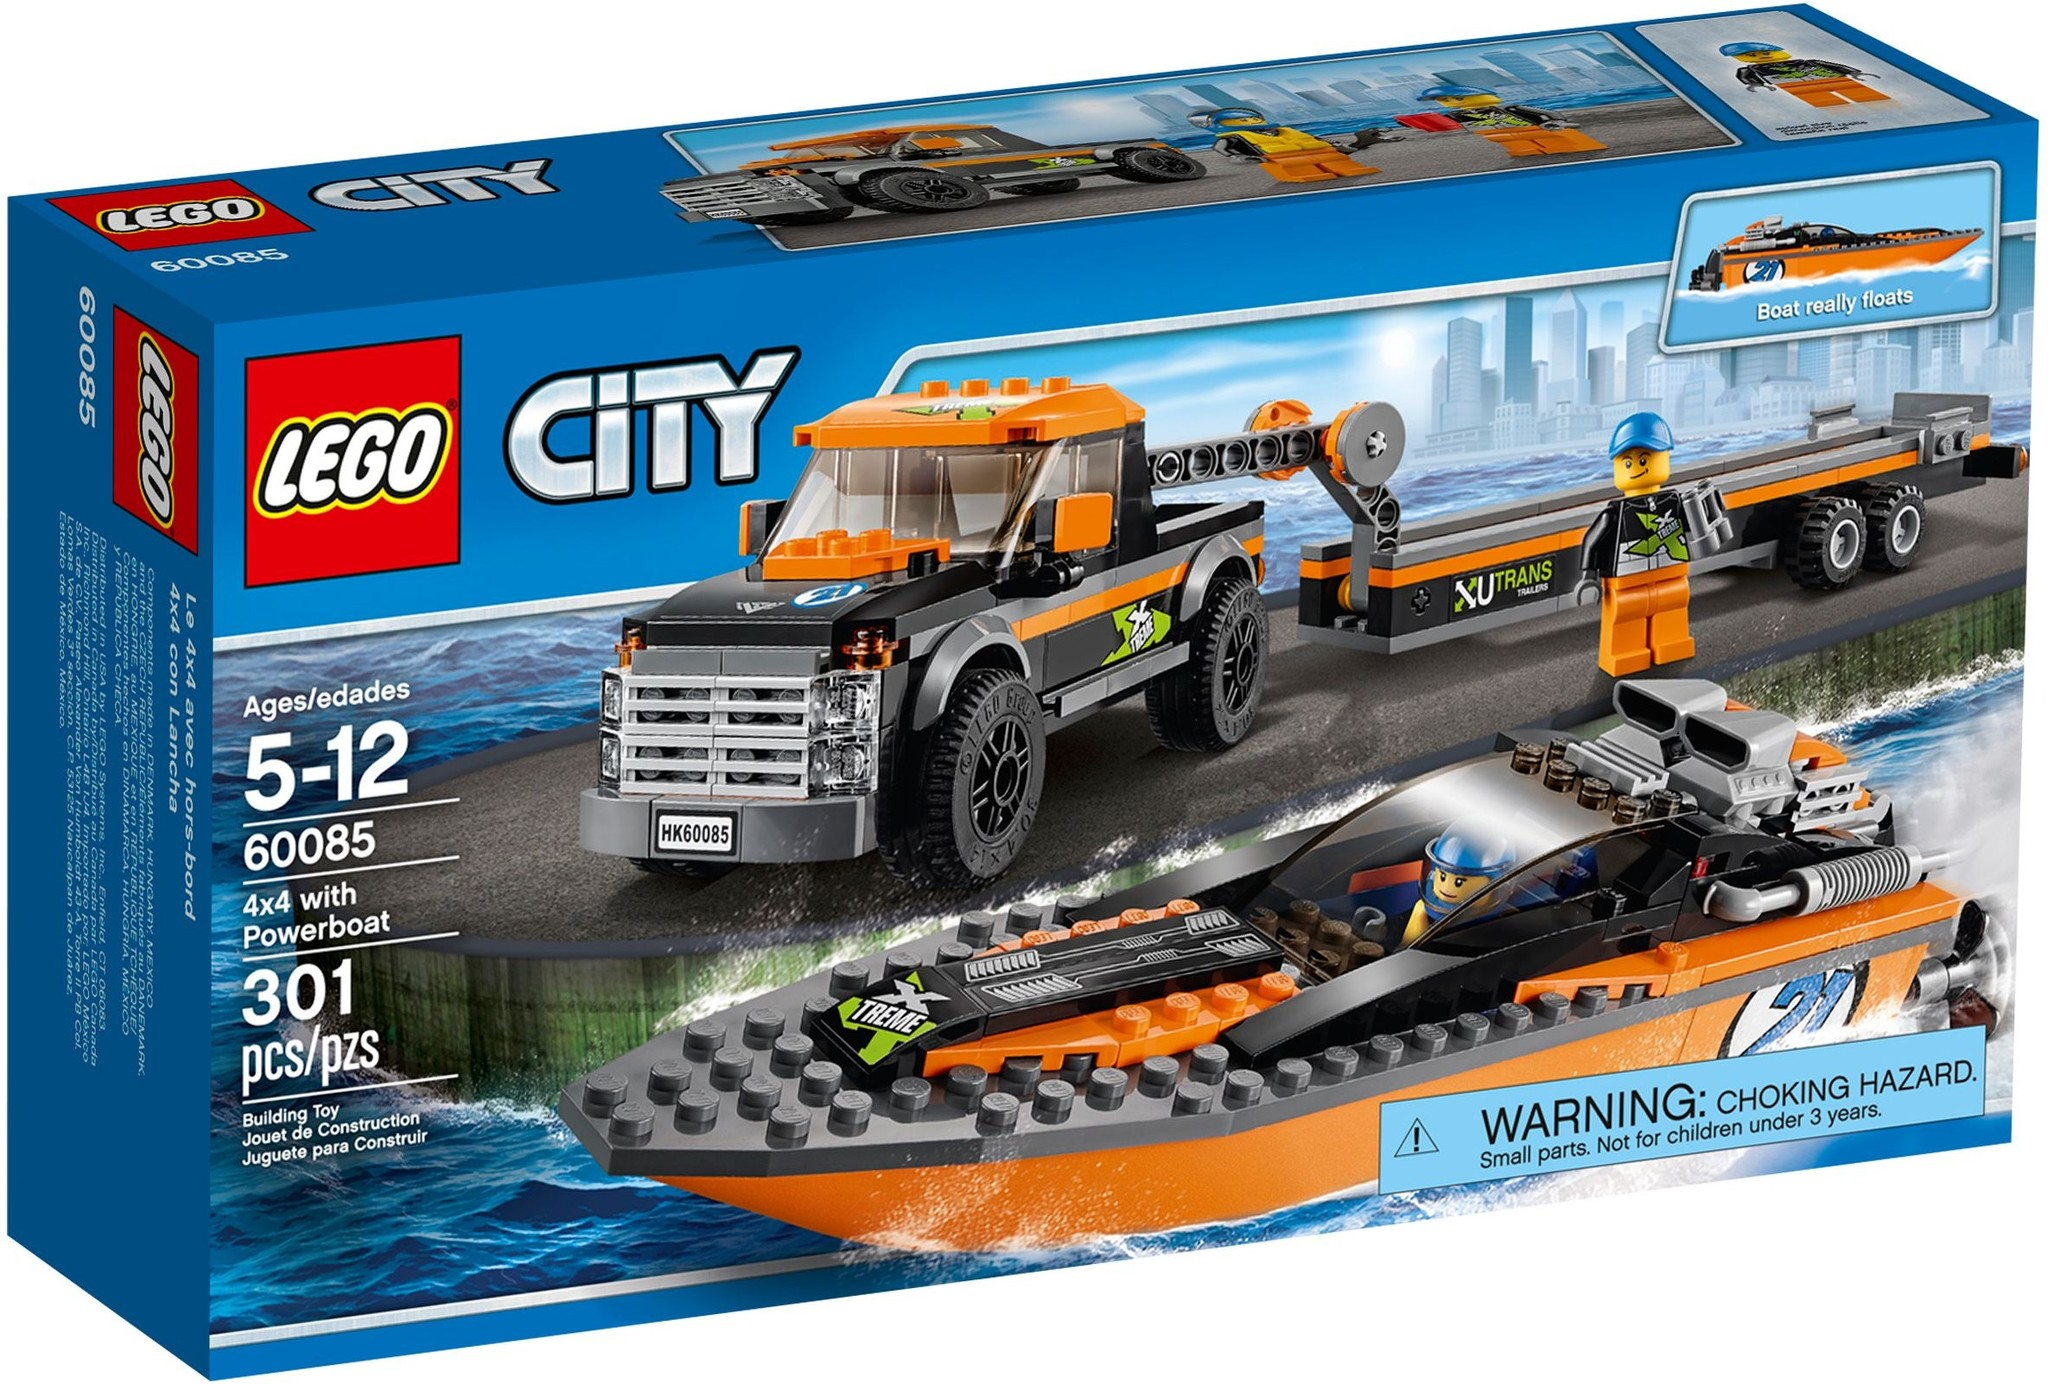 LEGO 60085 - City - 4x4 with Powerboat